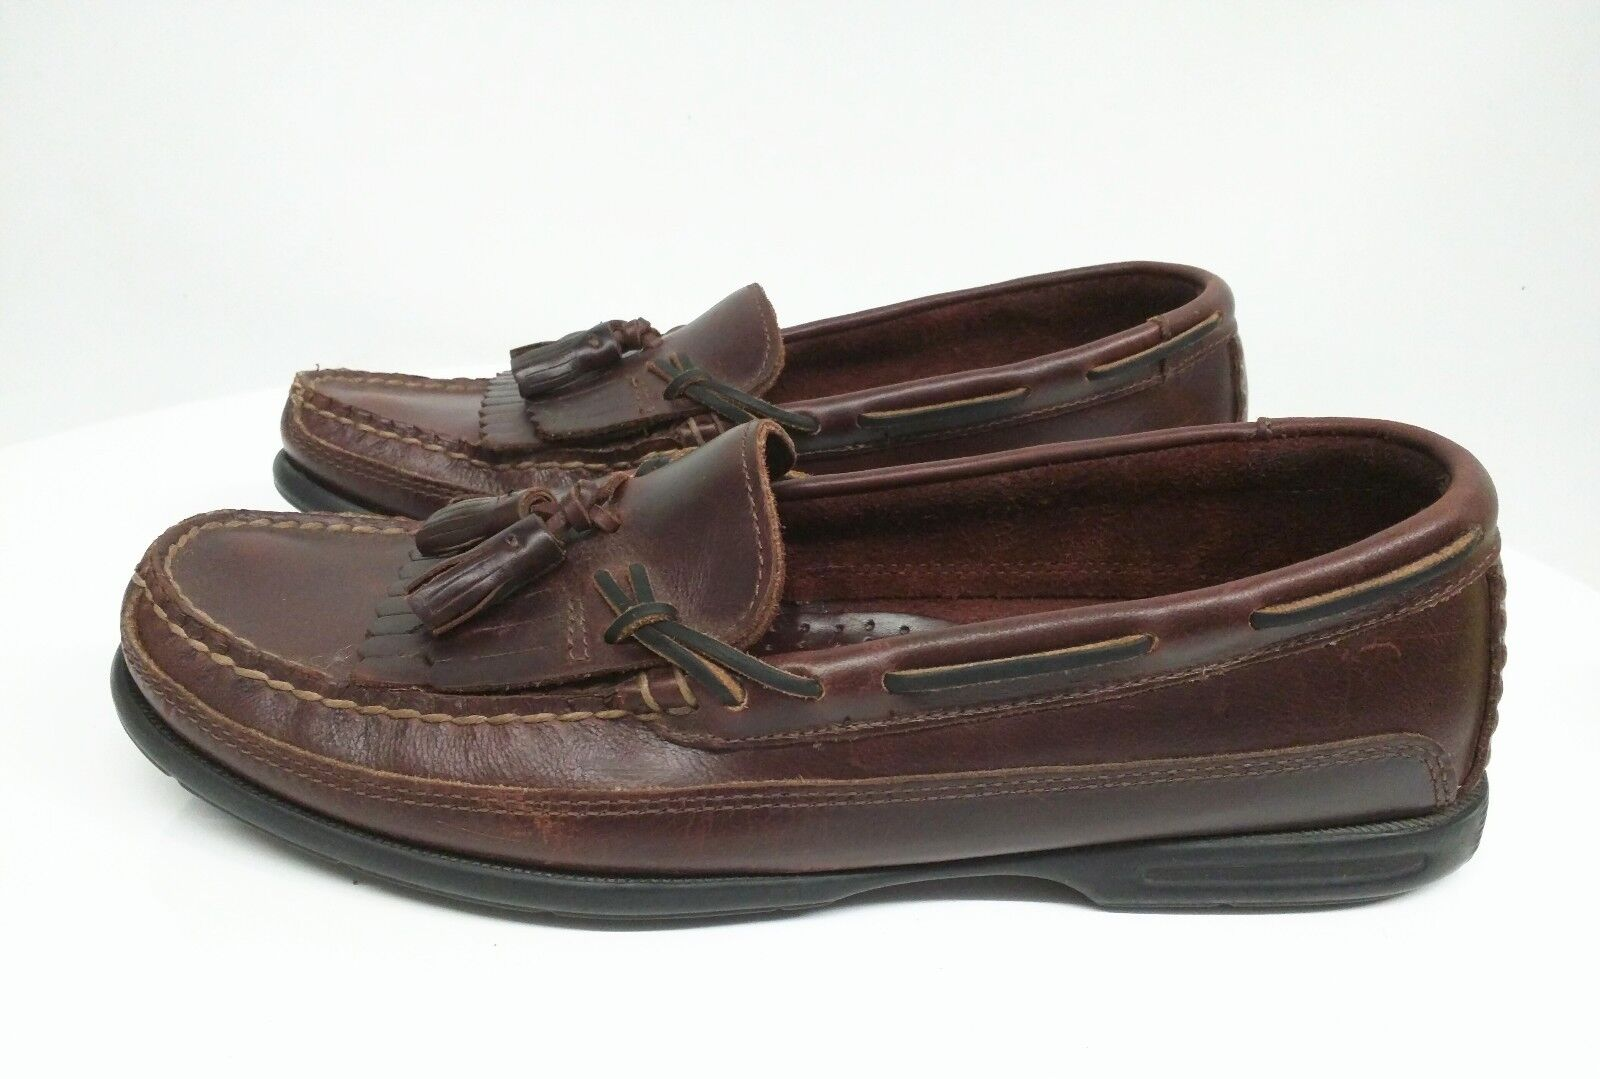 Vintage Sperry Top-Sider Full Leather Loafers Mens Size 11.5 M USA